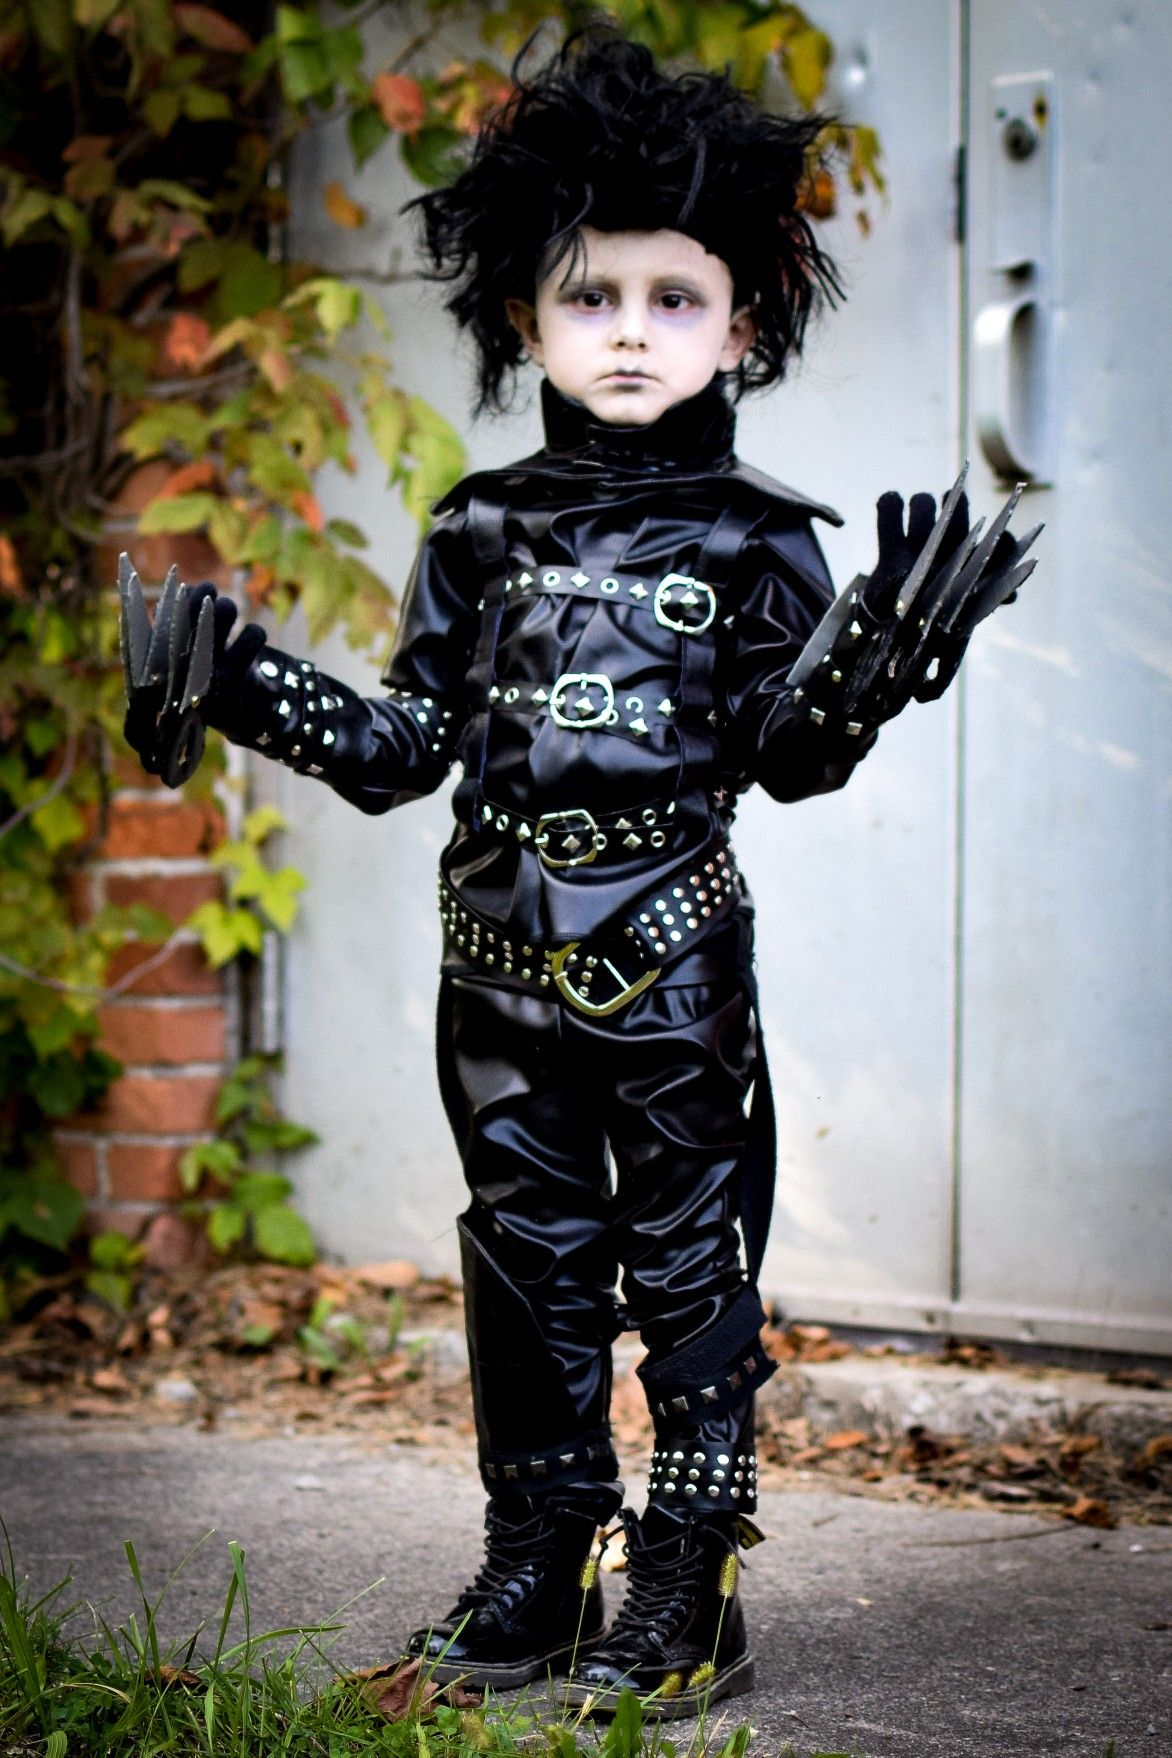 3 Year Old Halloween Costume.4 Year Old Boy Dressed In Toddler Edward Scissorhands Costume For Halloween Cute Kids Halloween Costumes Old Halloween Costumes Halloween Costumes Kids Boys